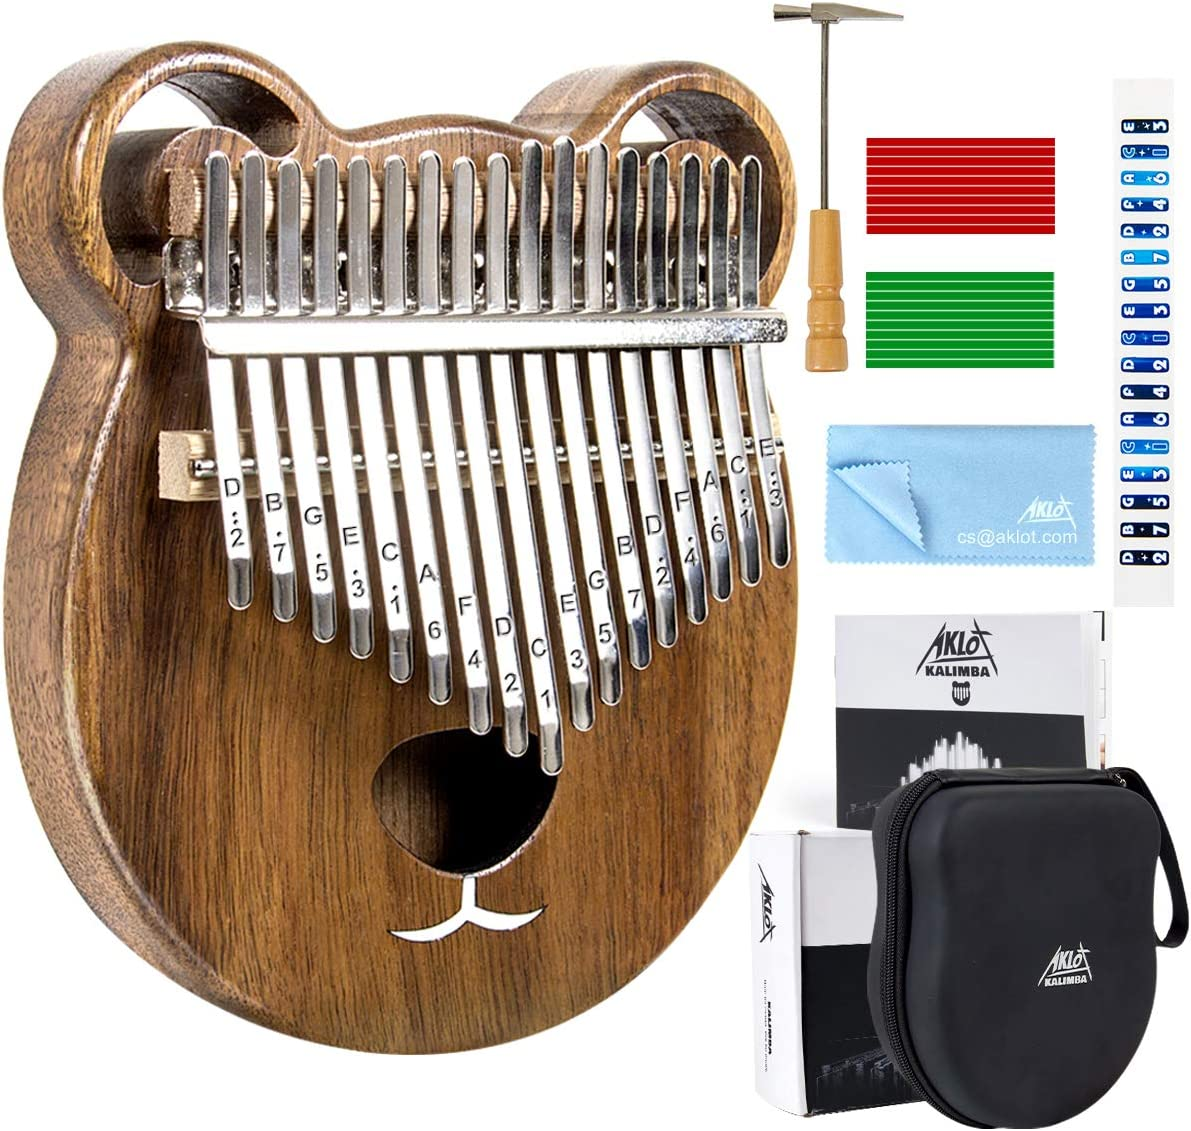 AKLOT Kalimba 17 Keys Thumb Piano Solid Wood Finger Piano Start Kits